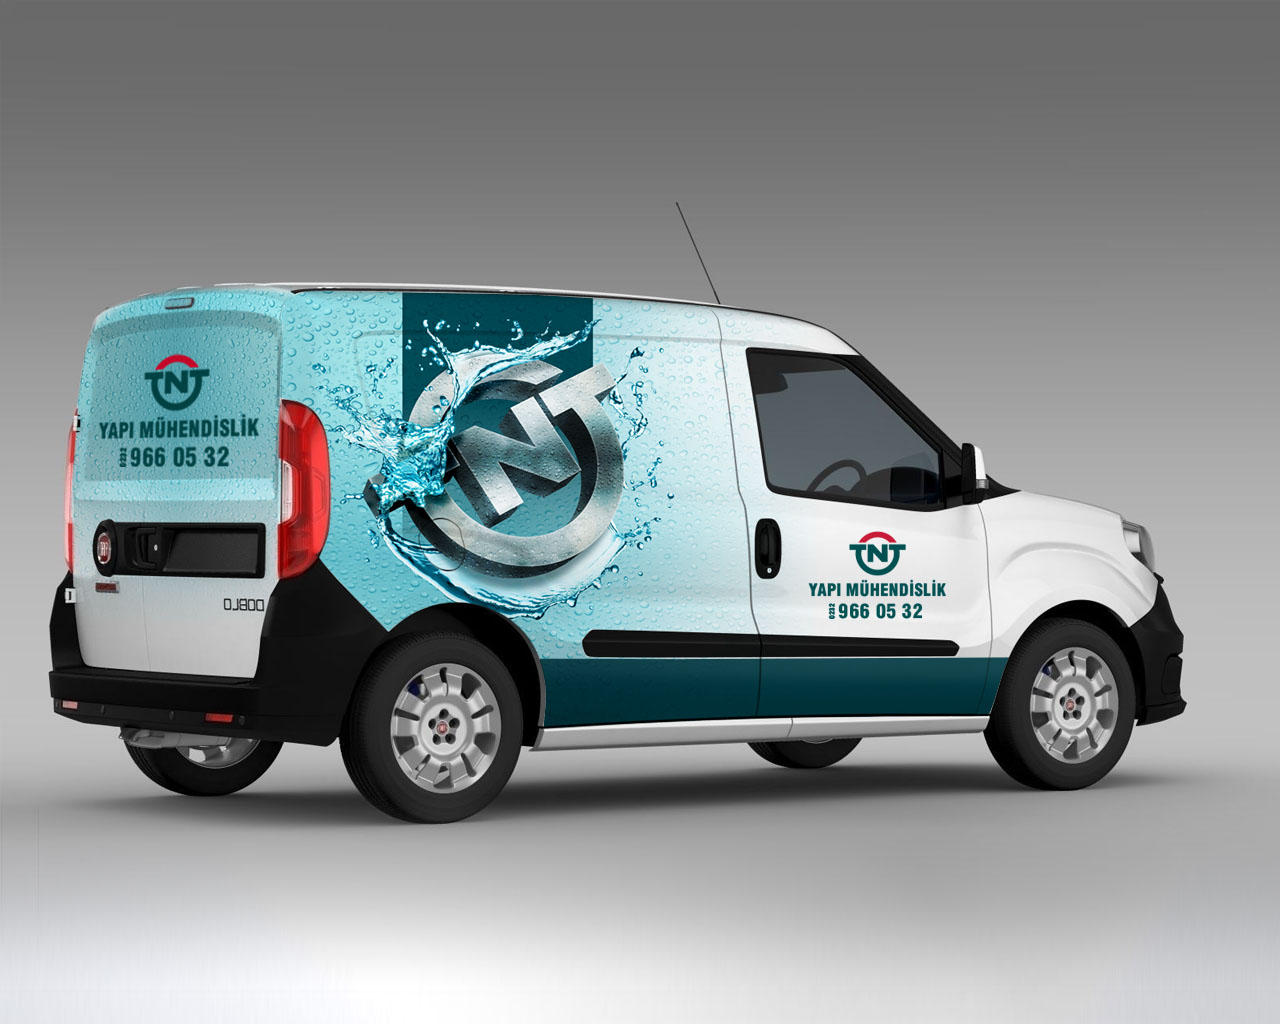 Vehicle Wrap Design by sgcanturk - 110816